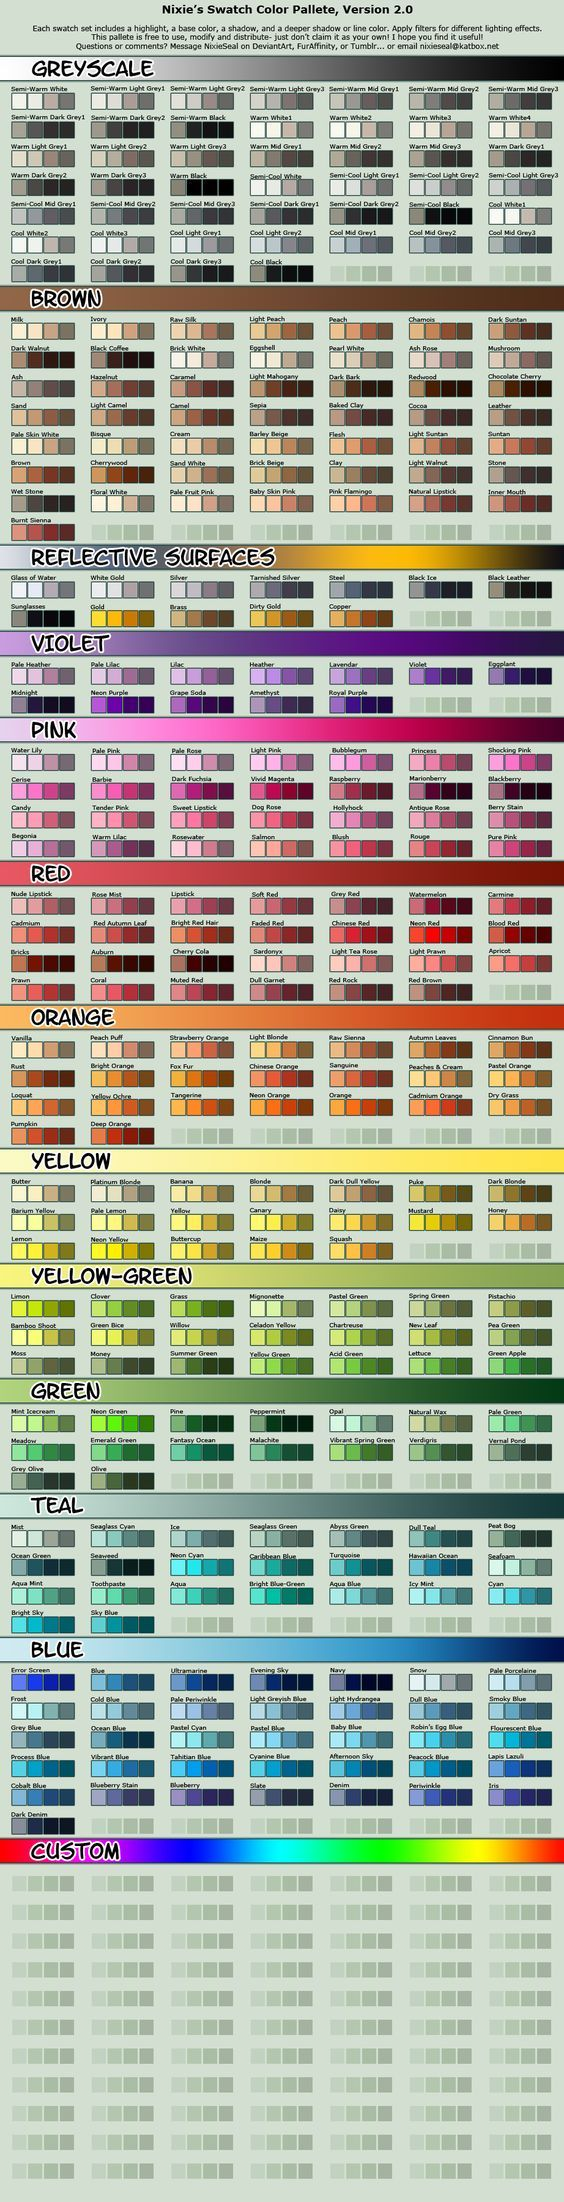 Vibrant Cell-shading Swatch